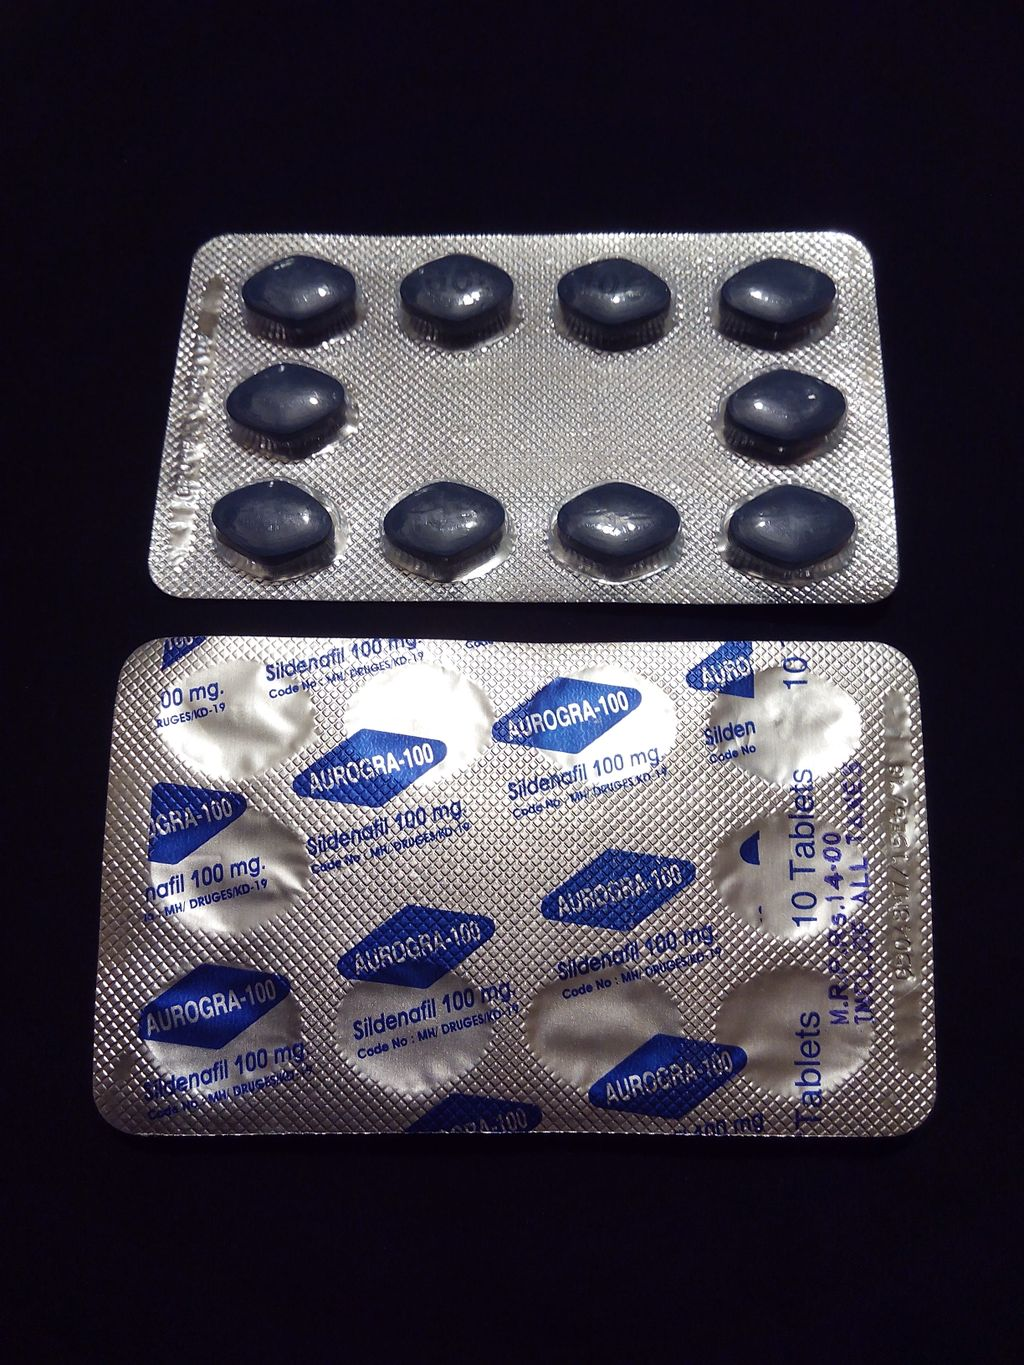 Viagra pharmacie prix france